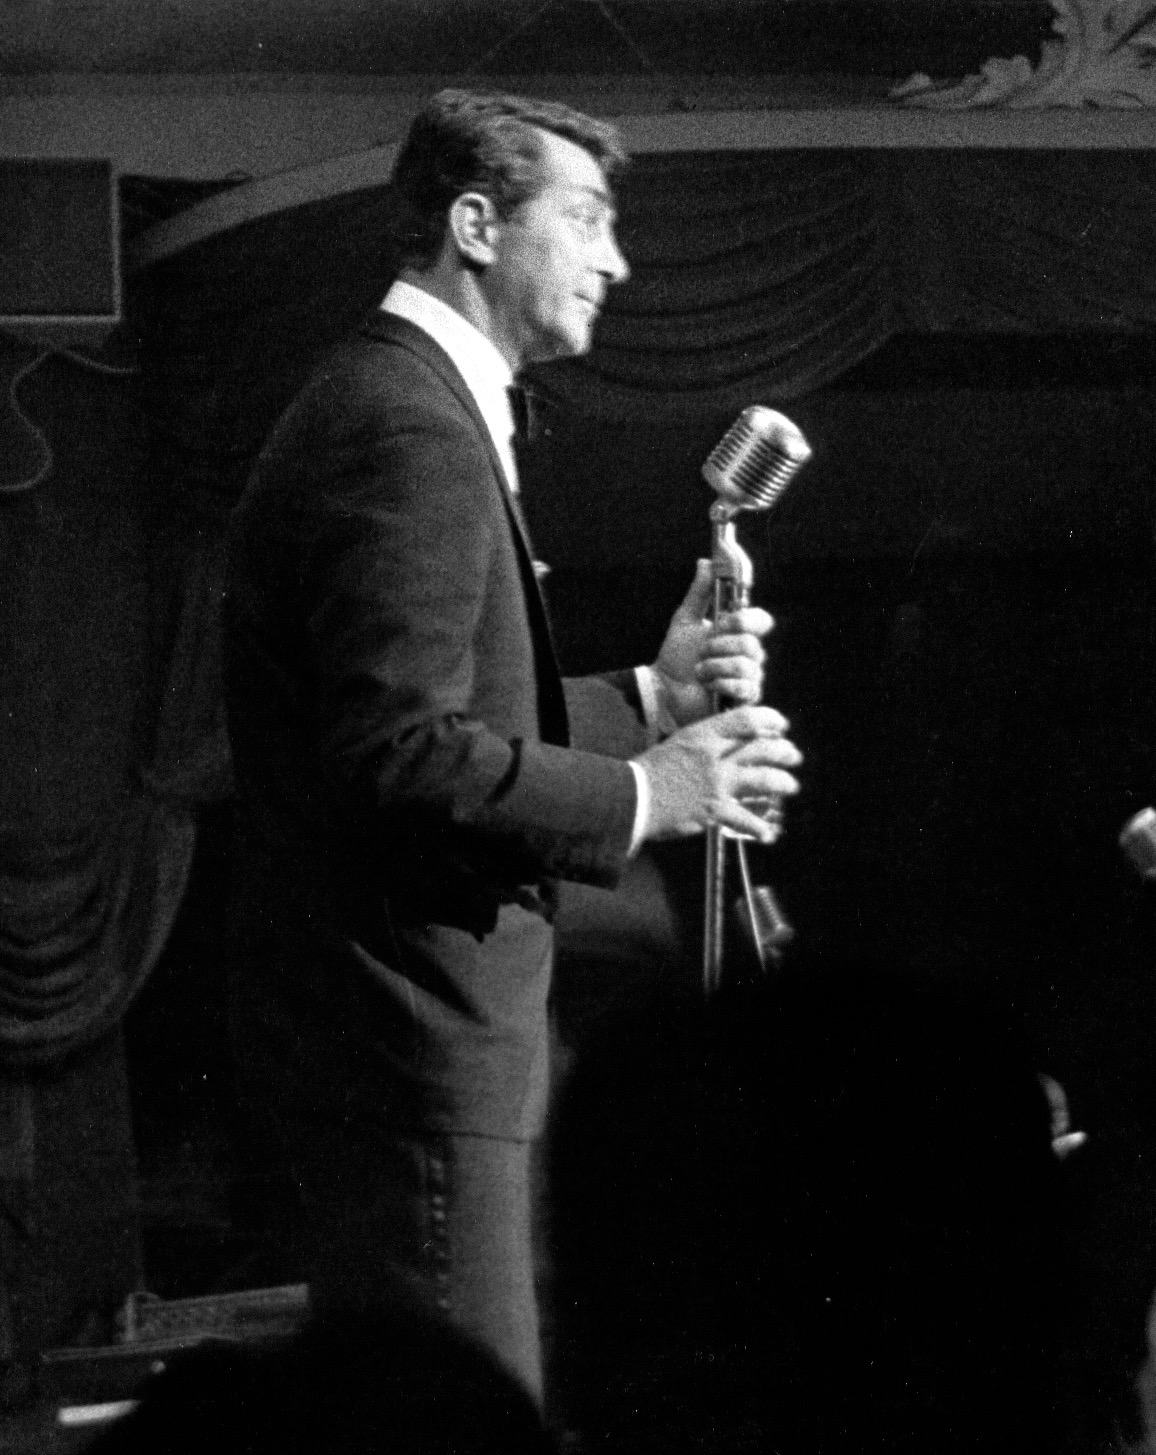 Dean Martin, 500 Club, Atlantic City